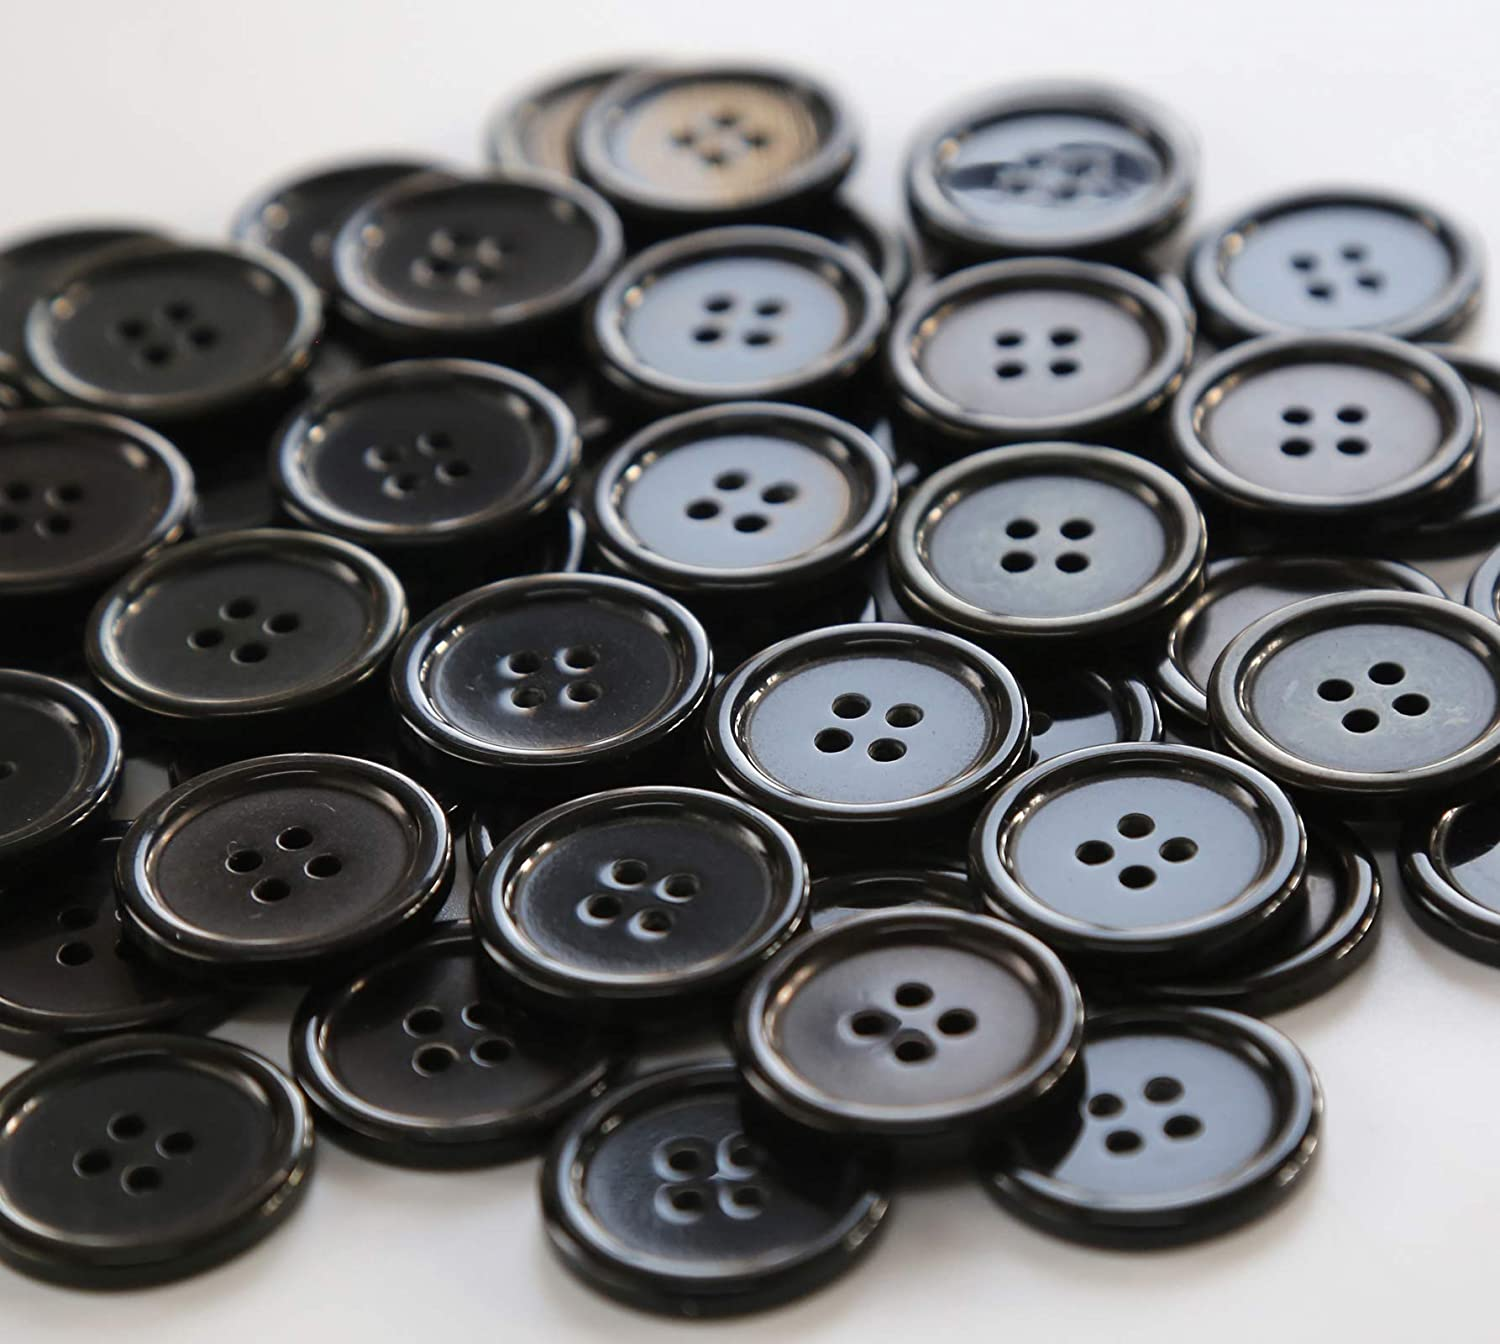 7 Black Buttons Black Shank Buttons Raised Bead Buttons Jewelry Button Vintage Button Lot Black Buttons Ornamental Buttons